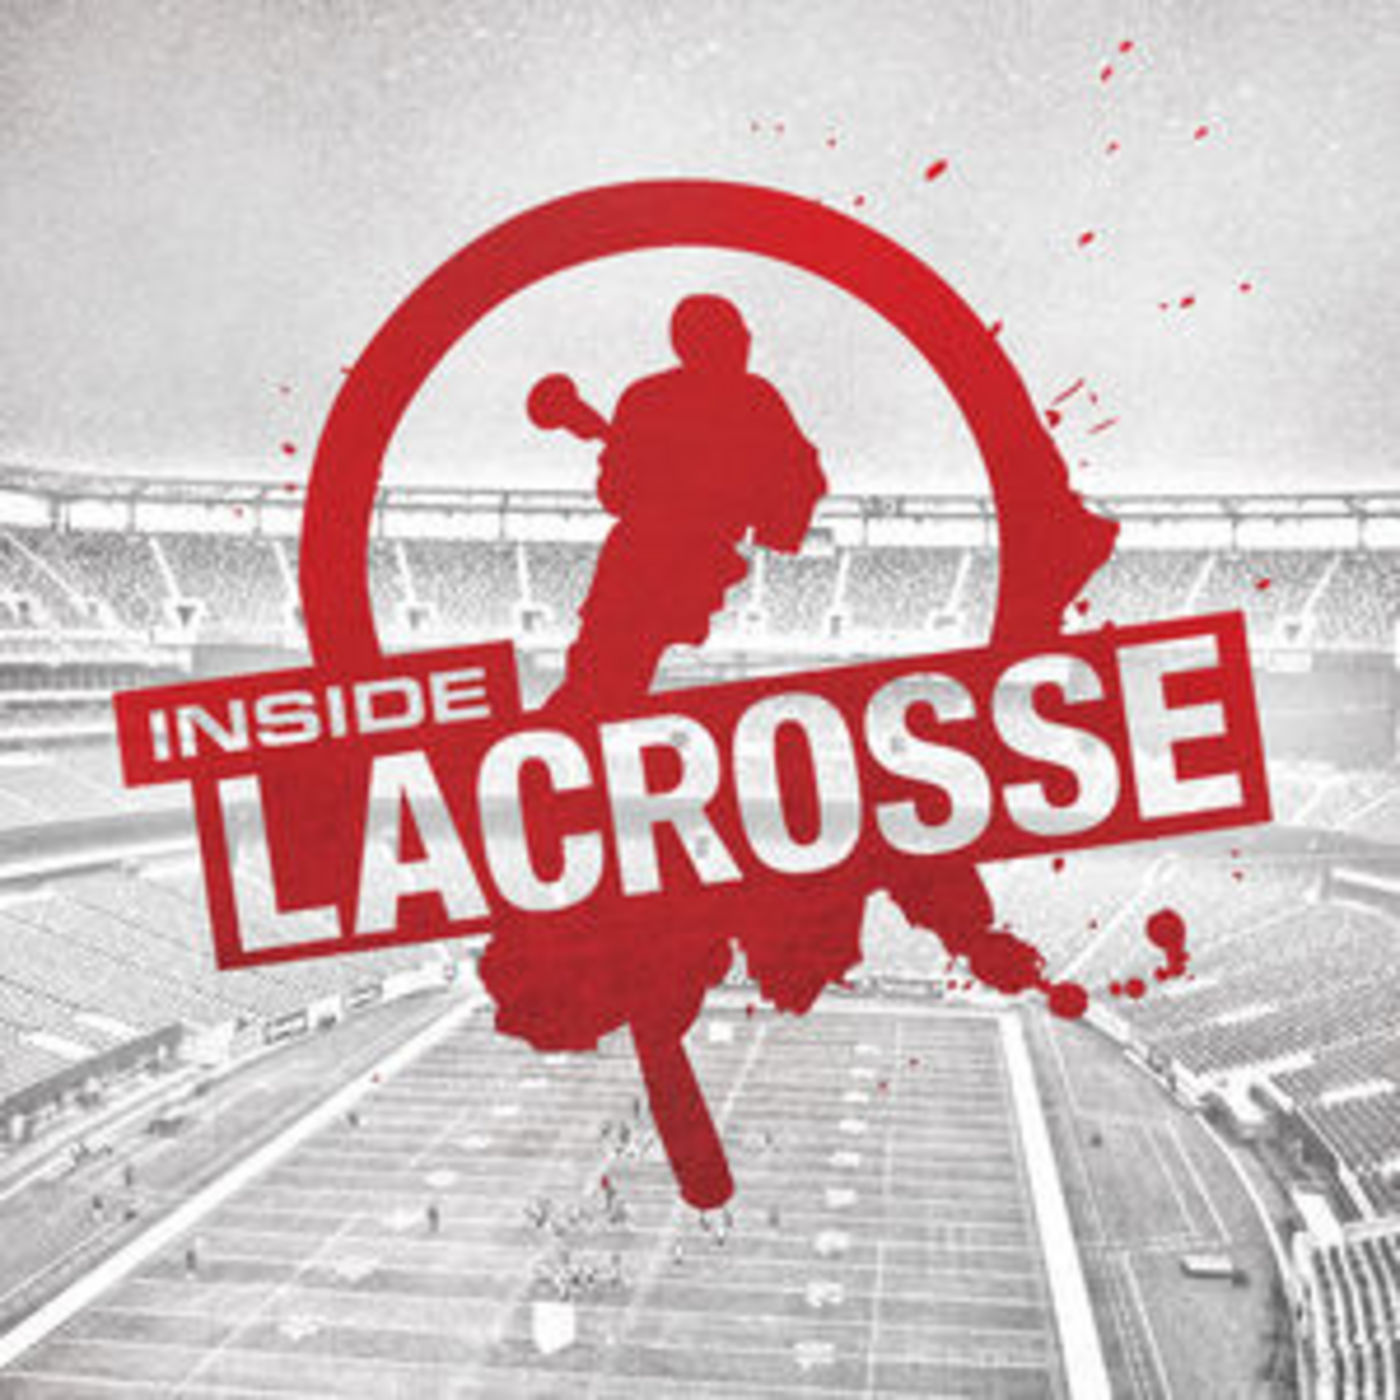 <![CDATA[Inside Lacrosse Podcasts]]>